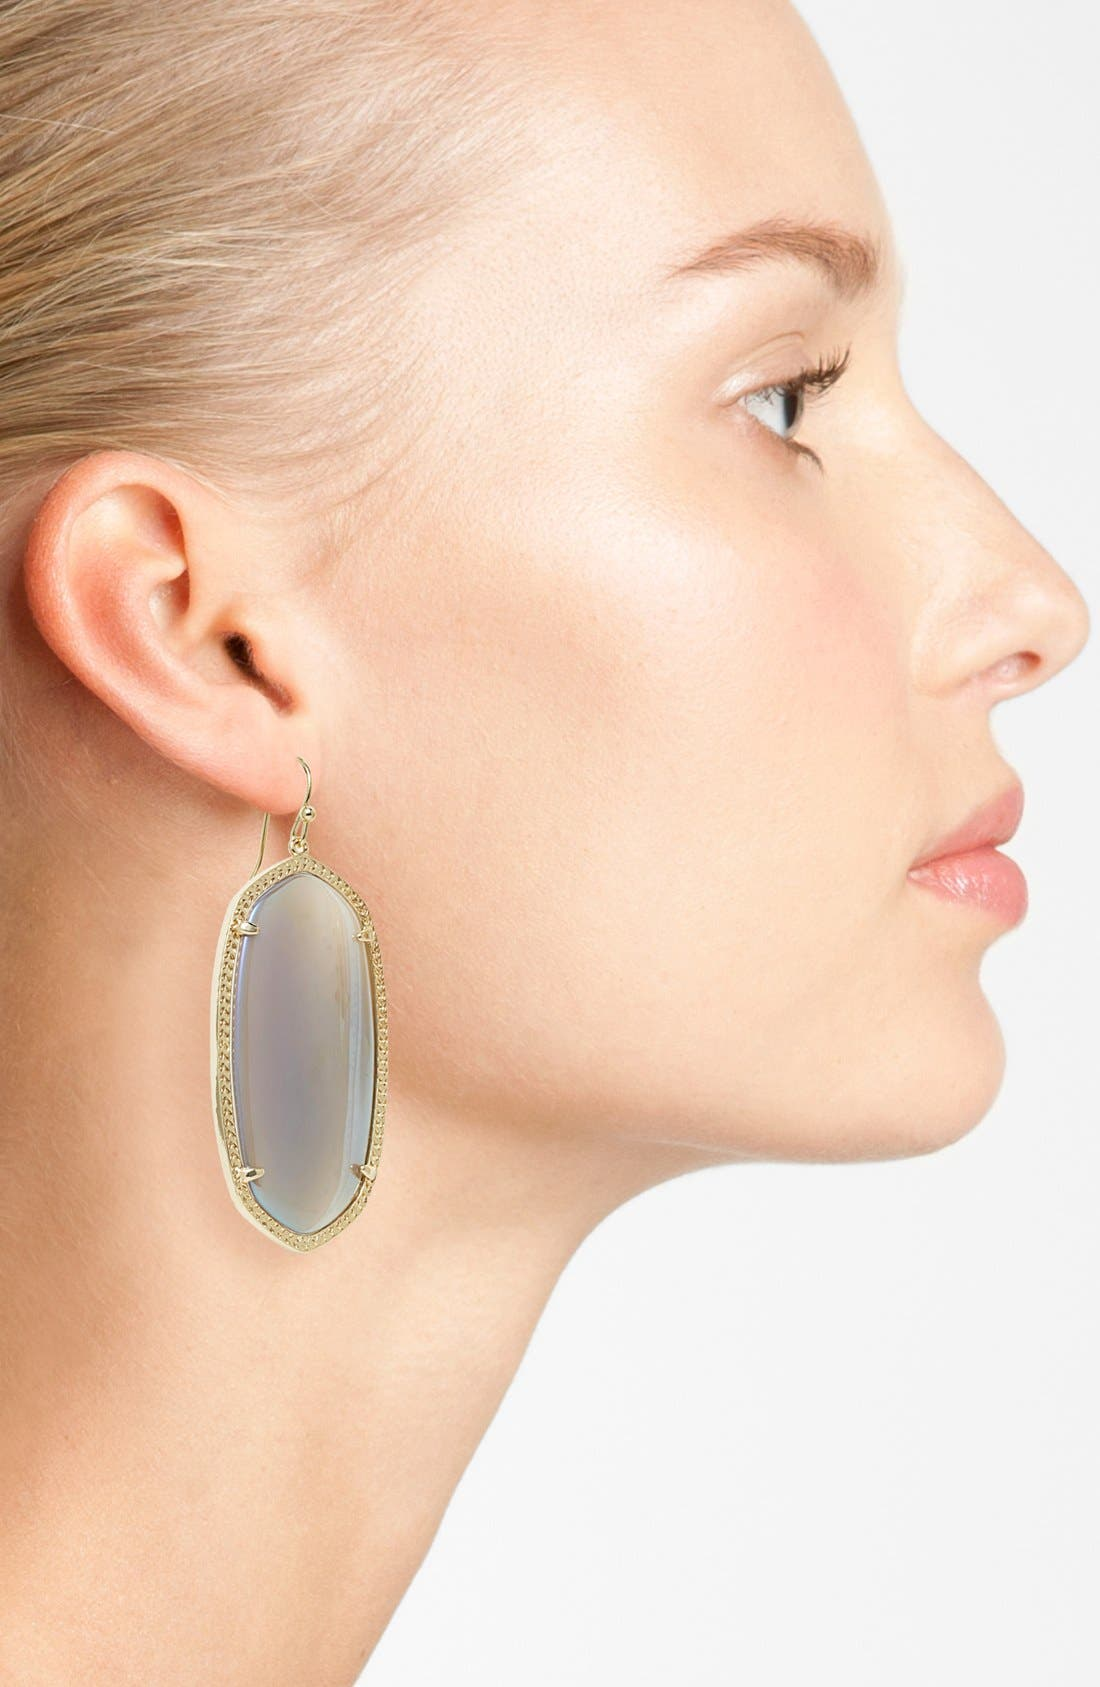 Danielle - Large Oval Statement Earrings,                             Alternate thumbnail 129, color,